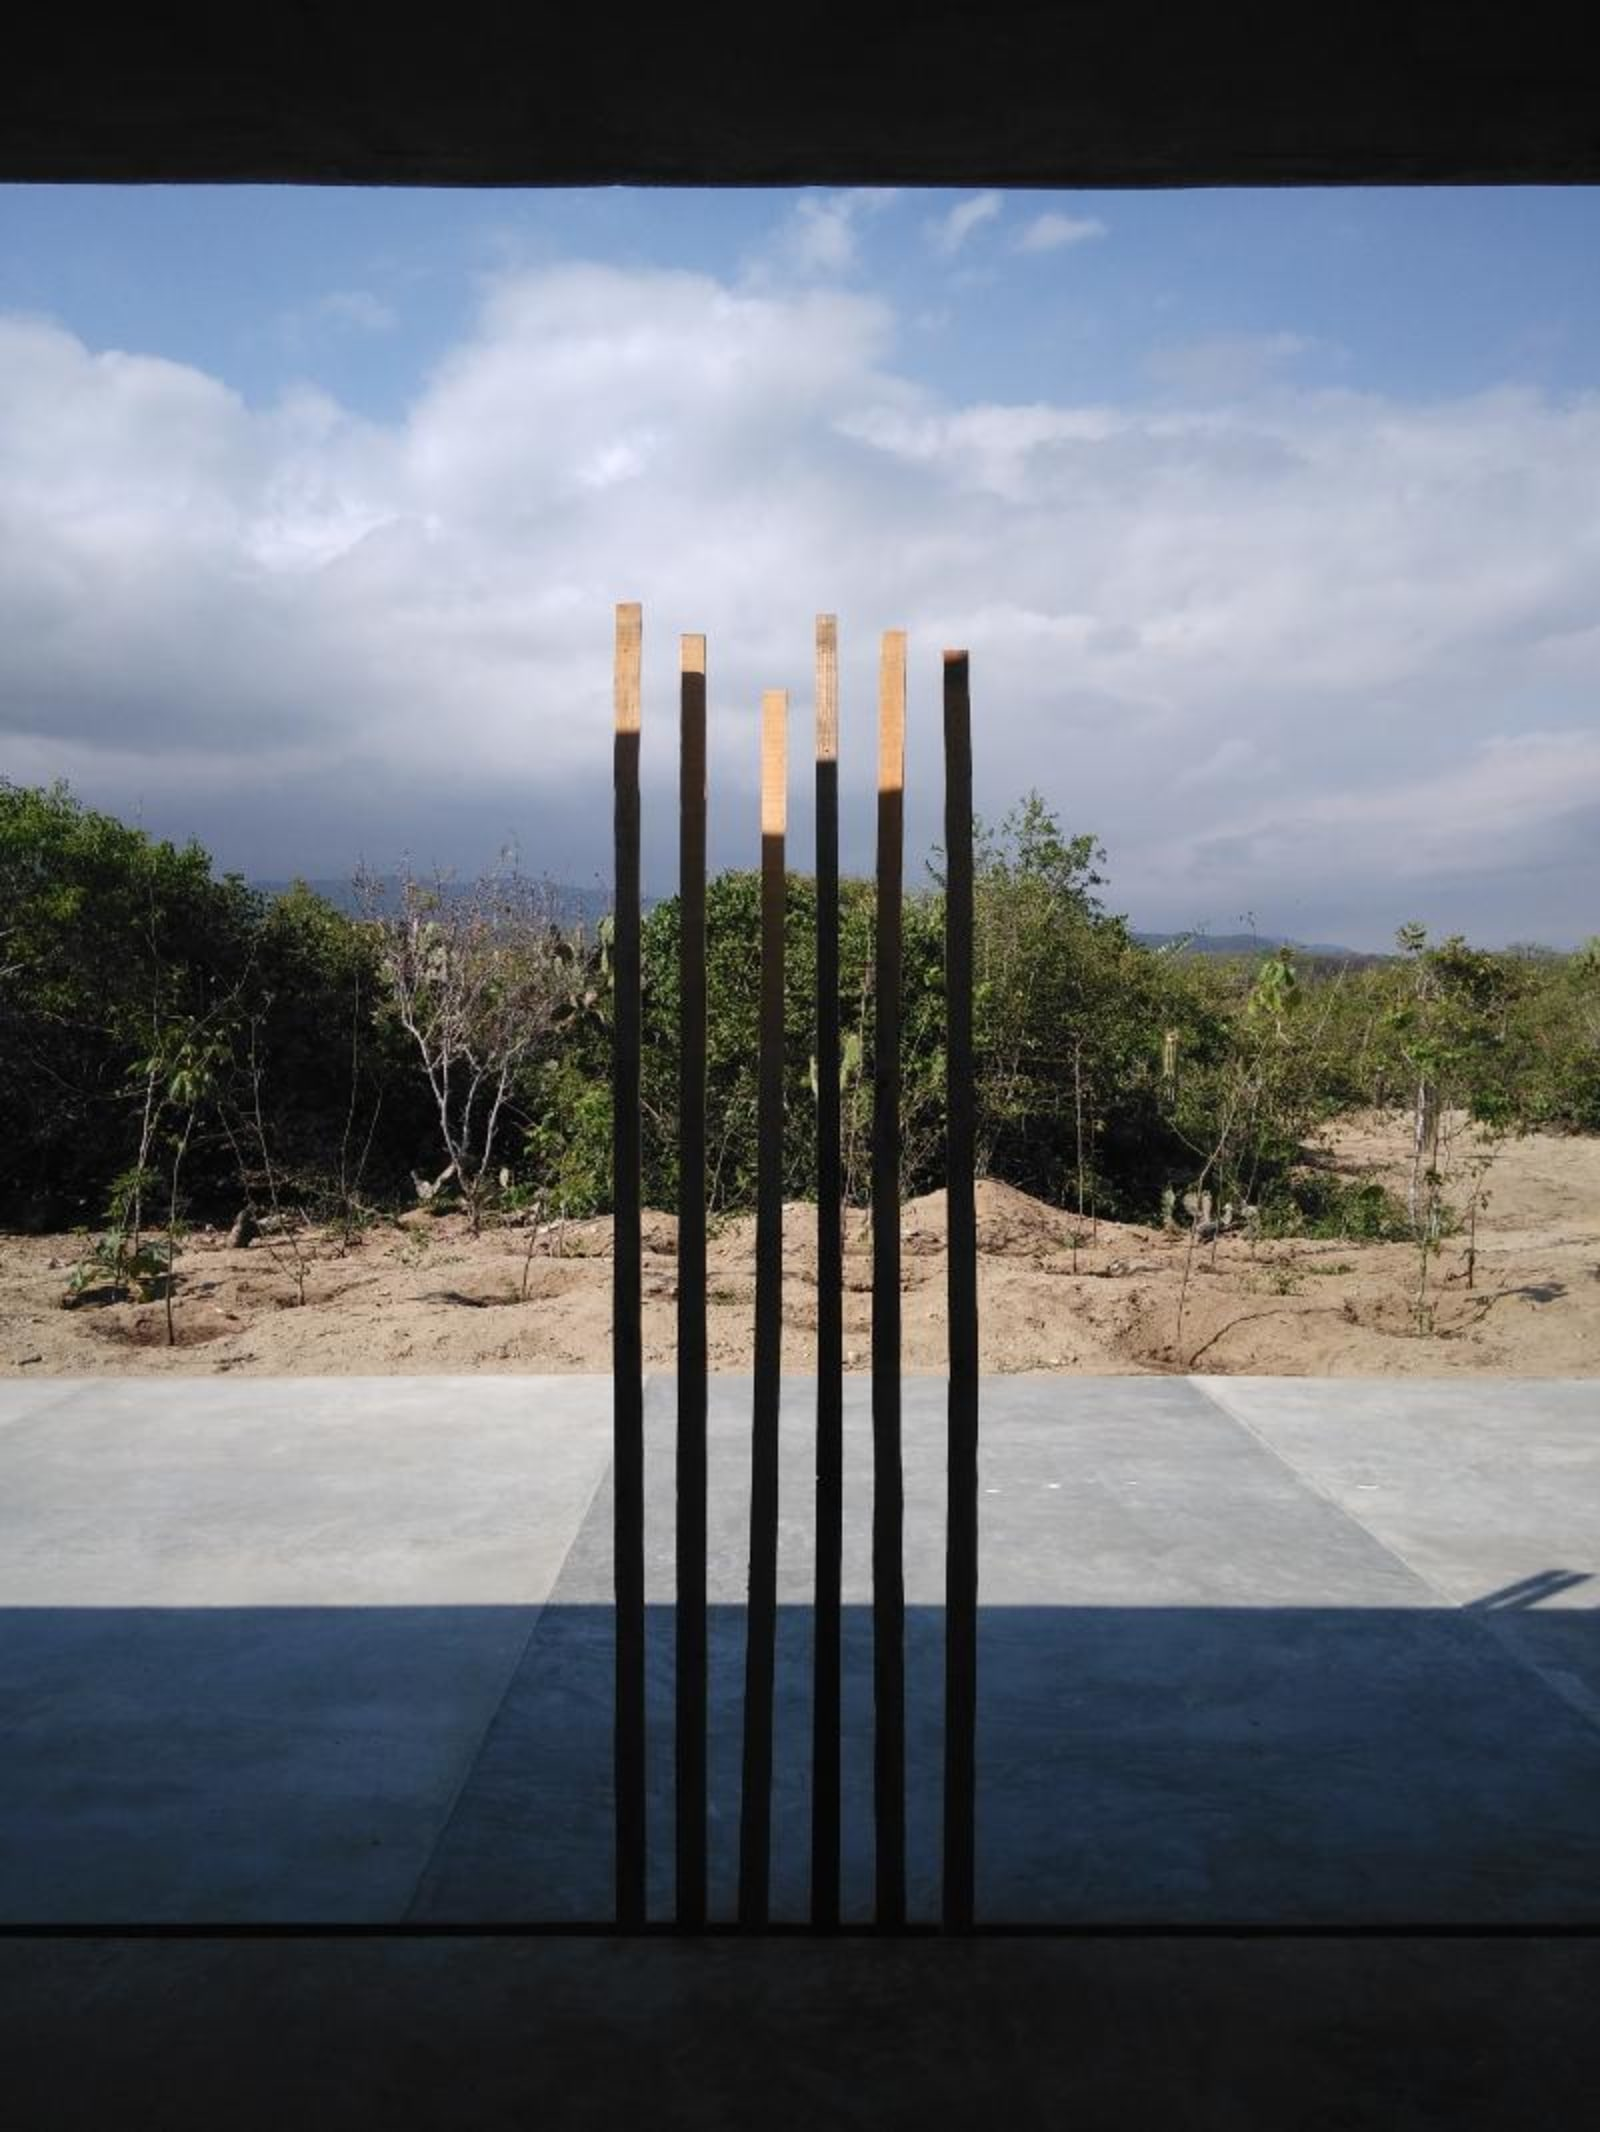 woods - in casa wabi, six long wood pieces are standing by themselves in front of a cement floor and sand and mexican plants and then the mountain behind - wood - paul lahana